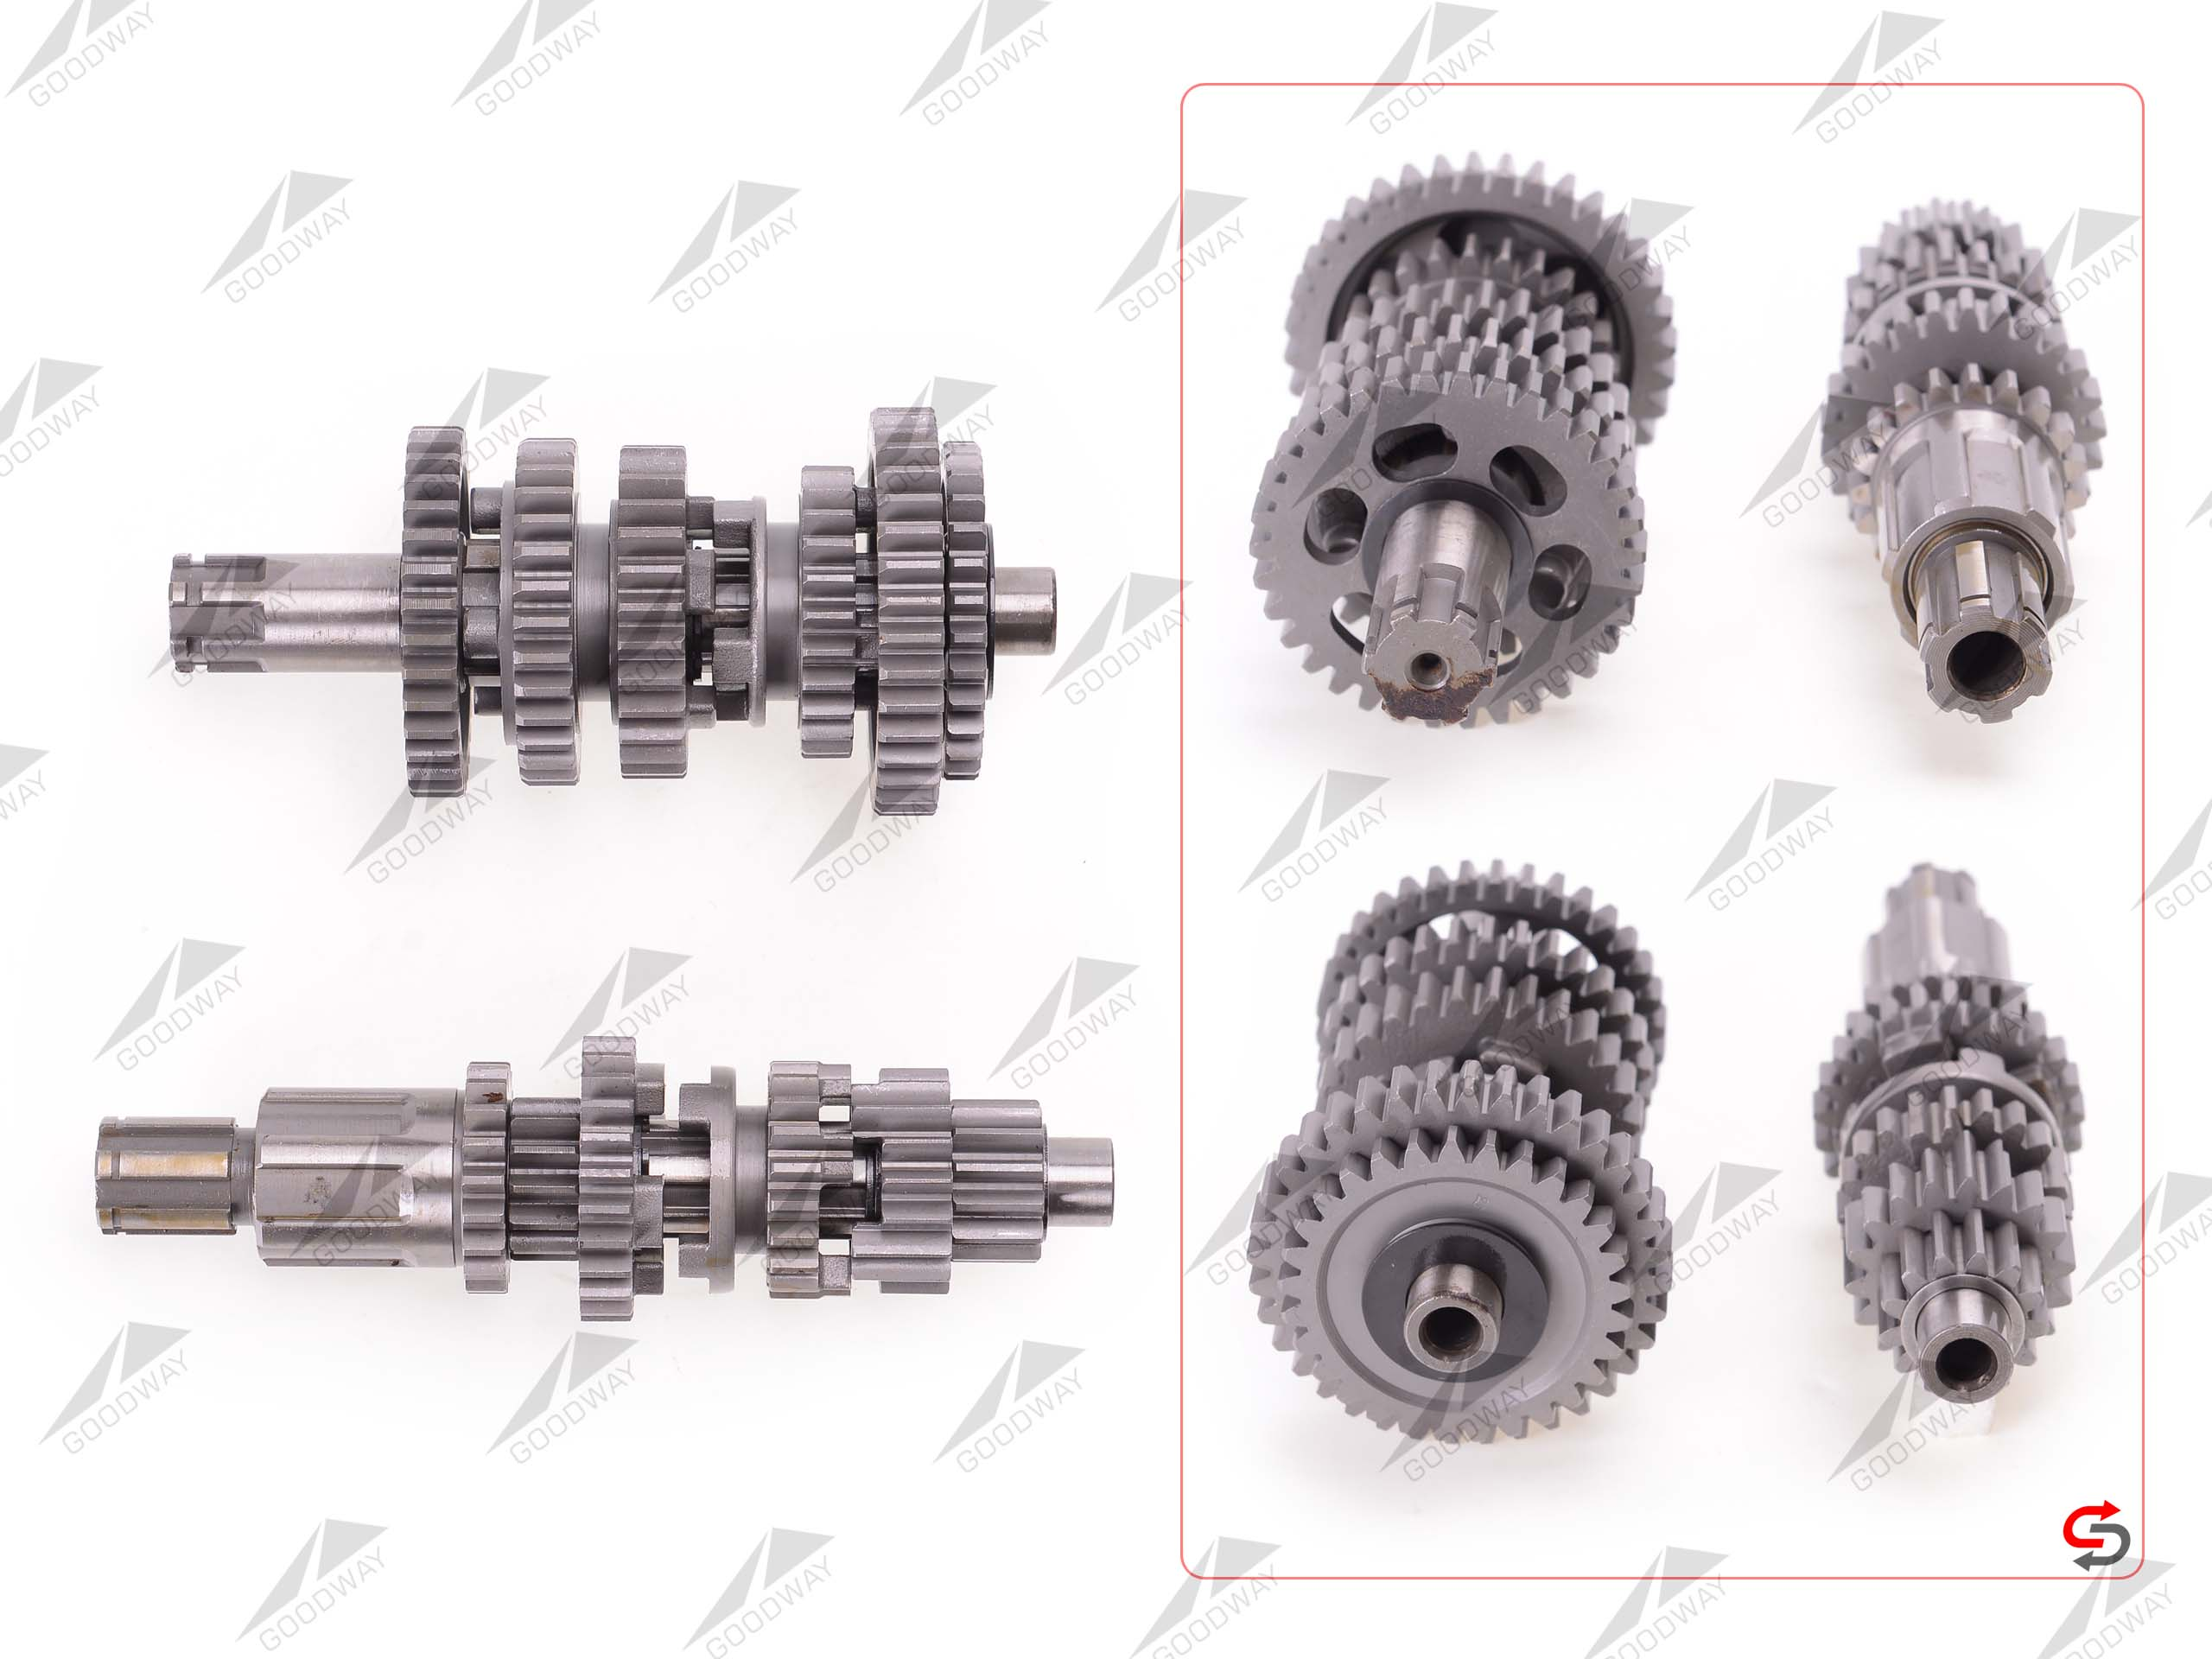 COMPLETE GEARBOX A02721